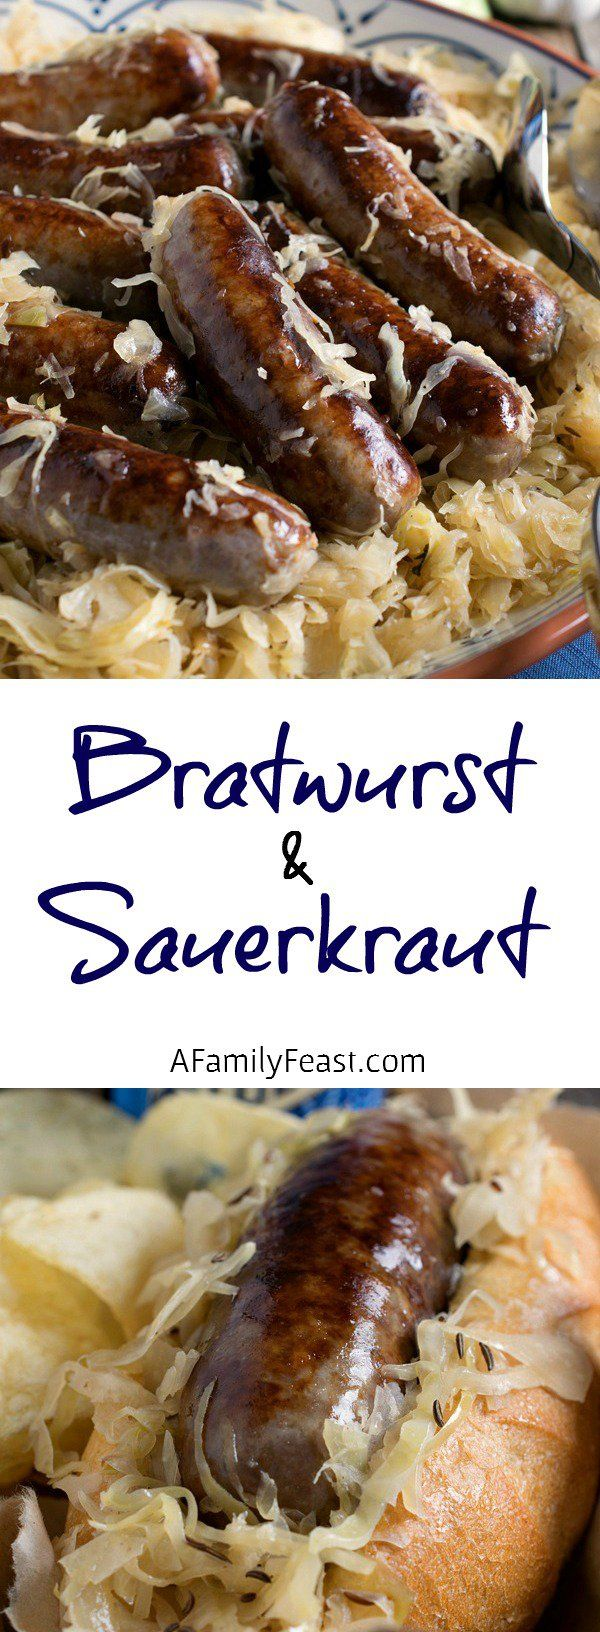 Bratwurst and Sauerkraut - A simple dish with fantastic flavor! We share our tips to ensure a super flavorful meal.